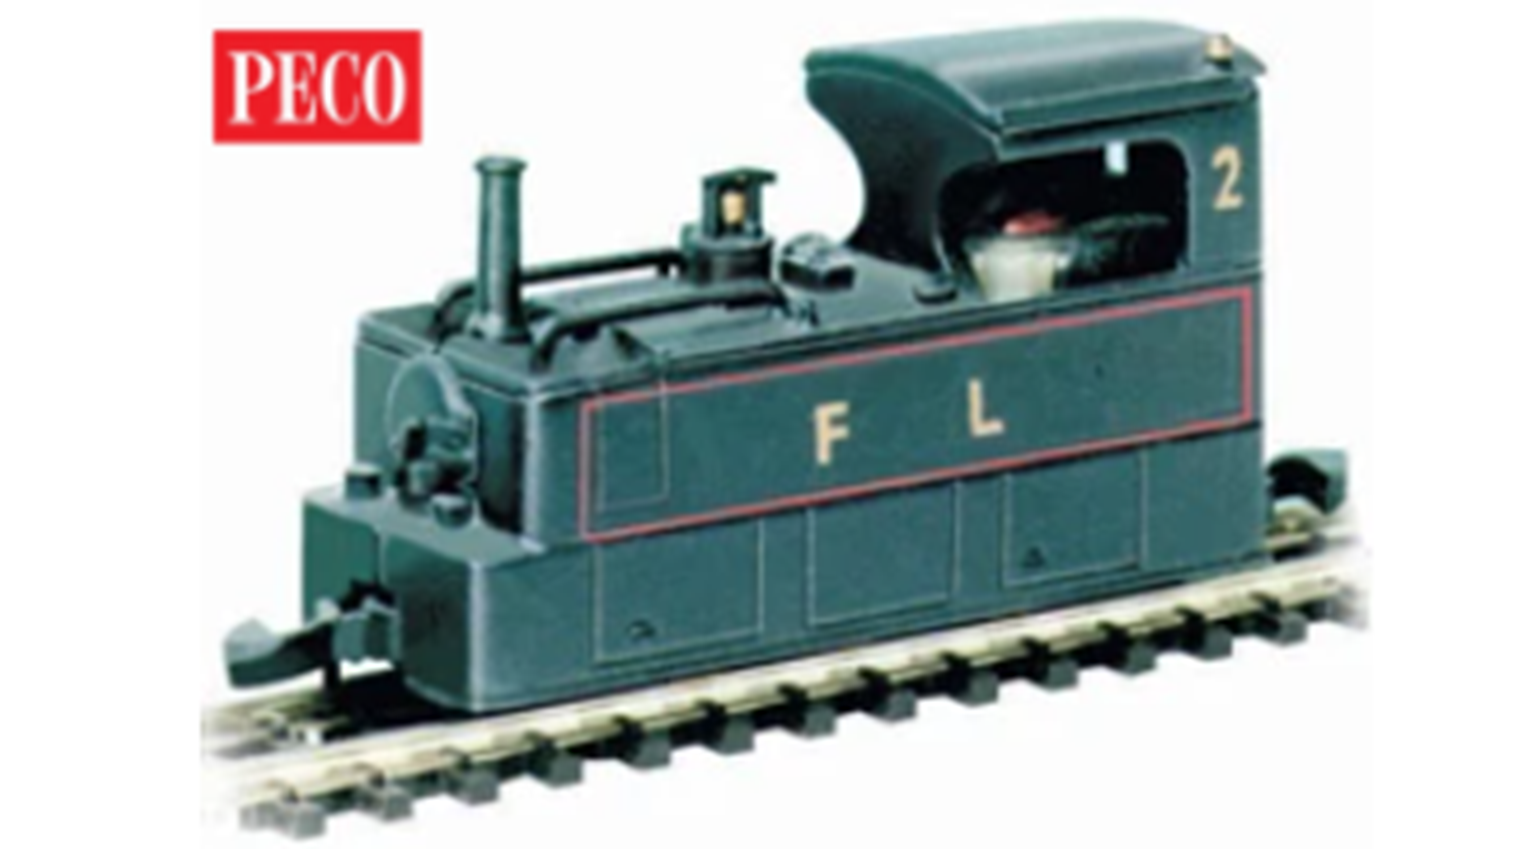 0-6-0 Tram Locomotive Body